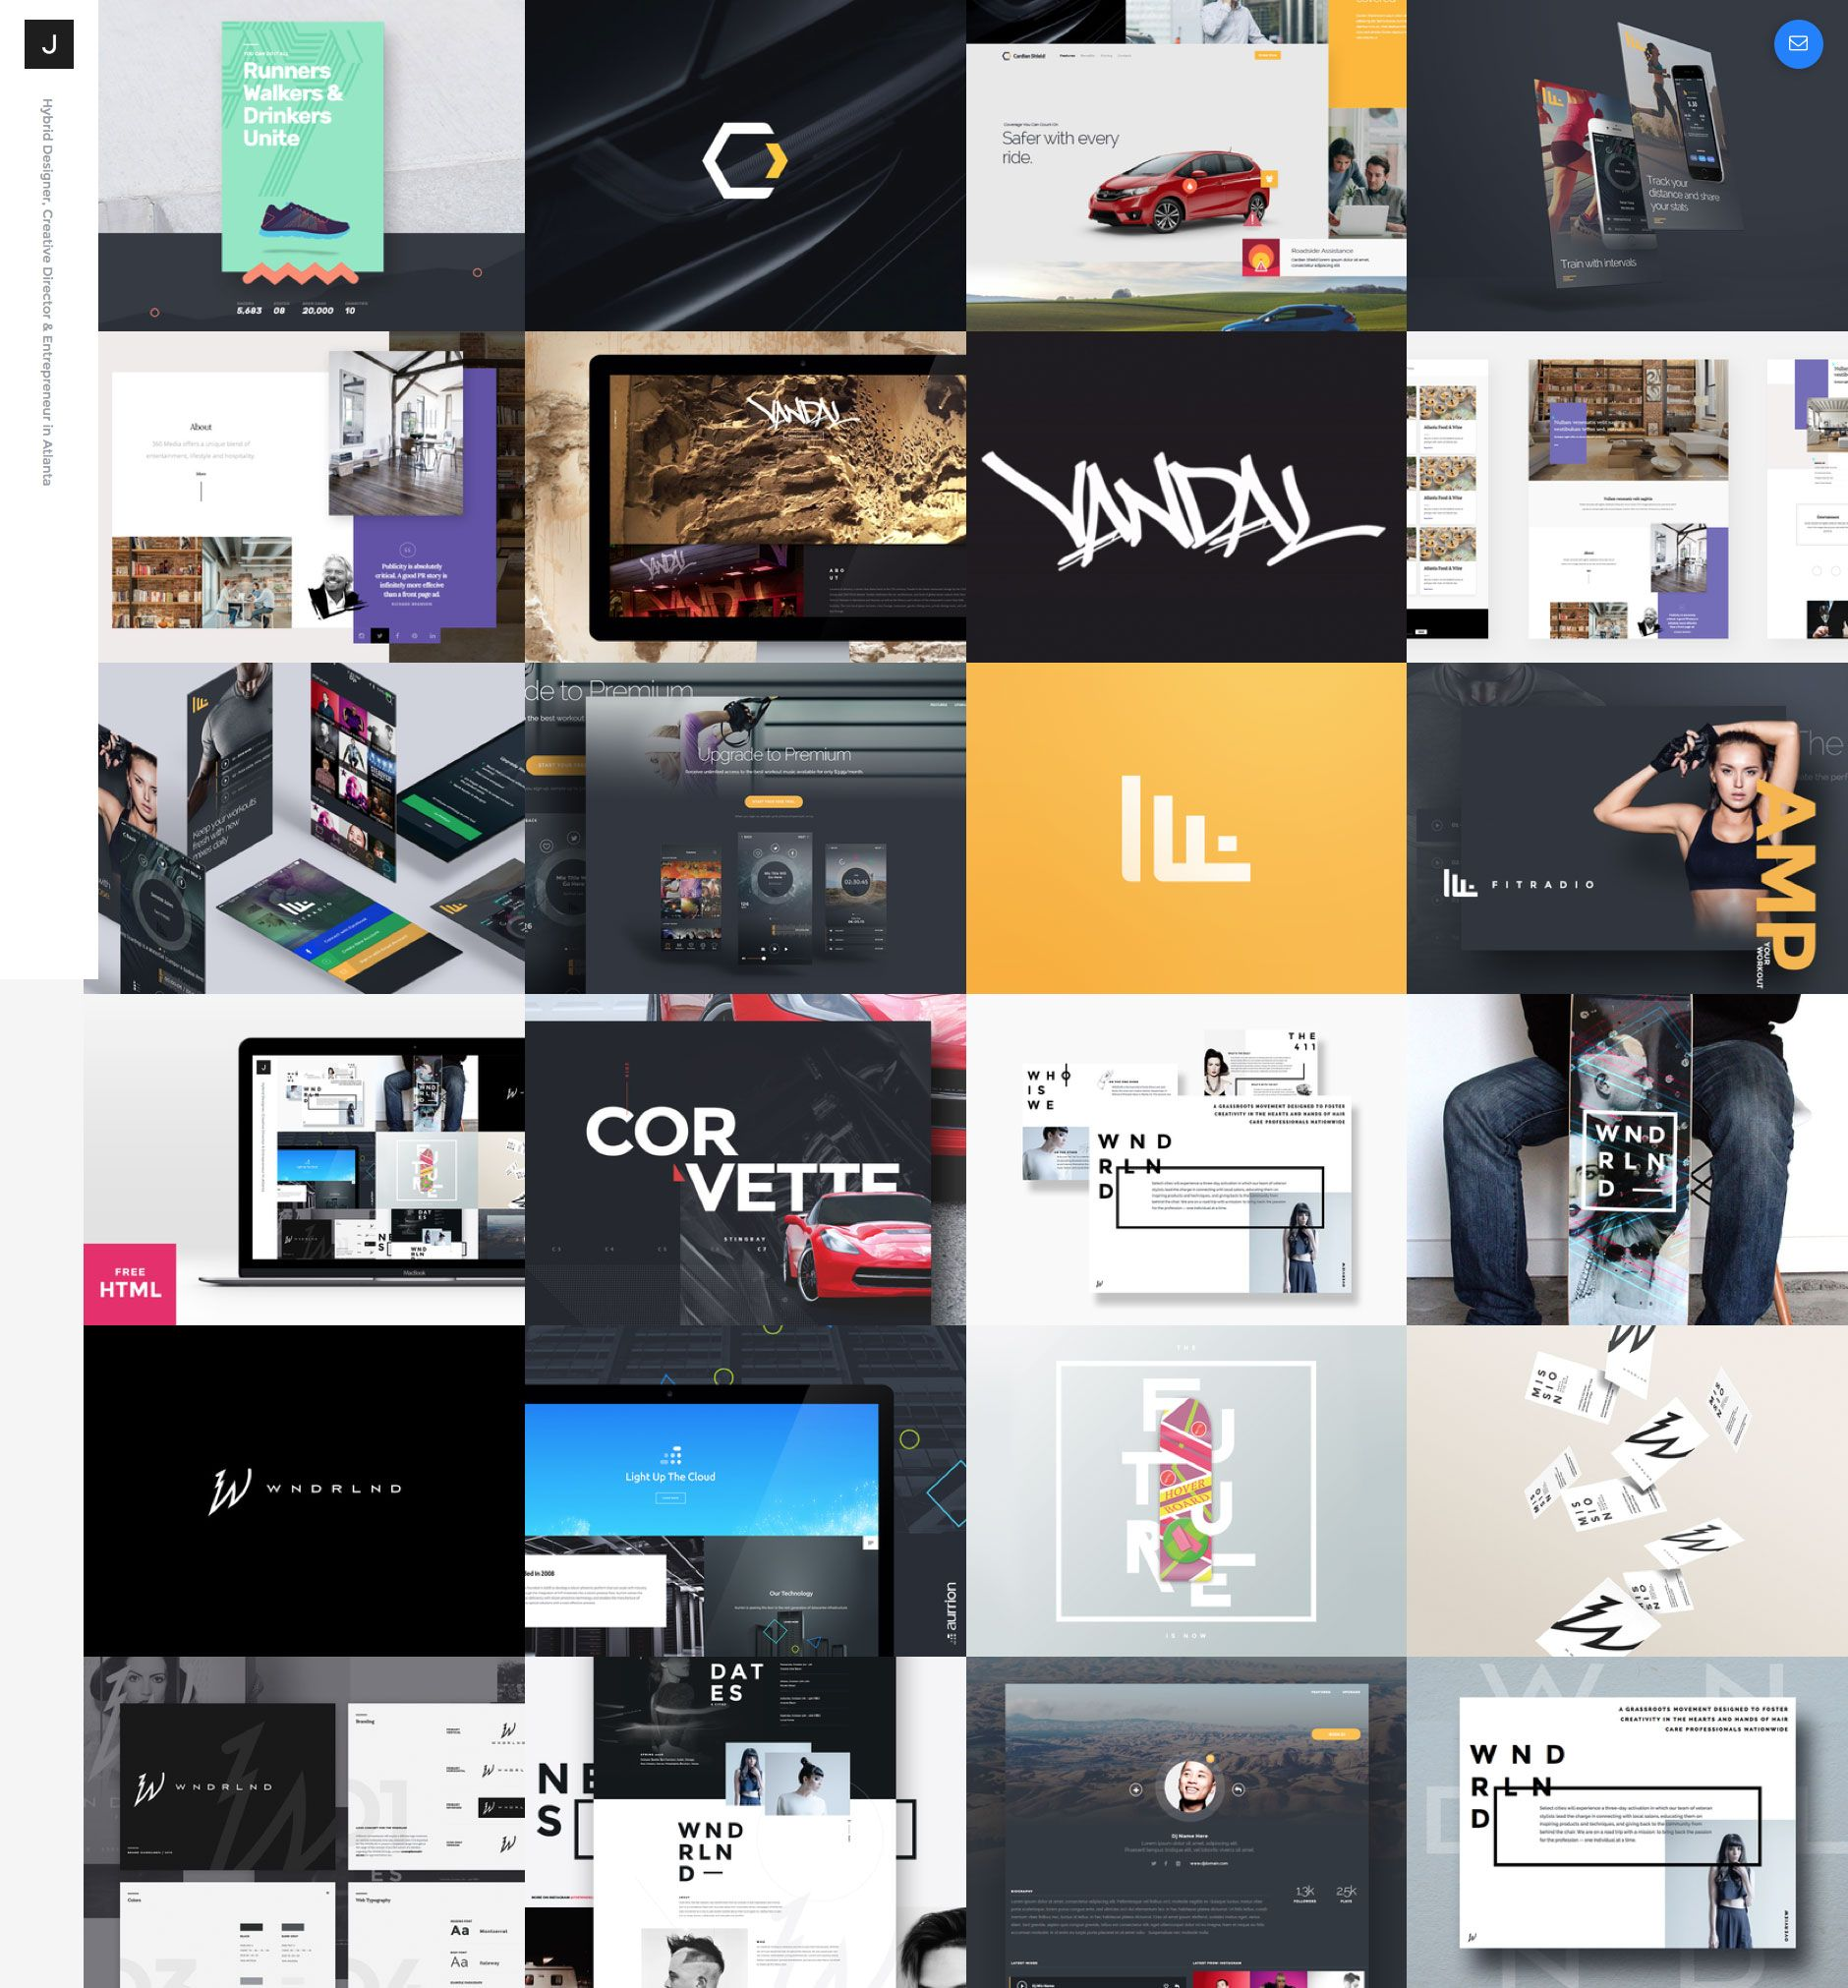 Dribbble Feed Portfolio is a free responsive HTML5 one page website